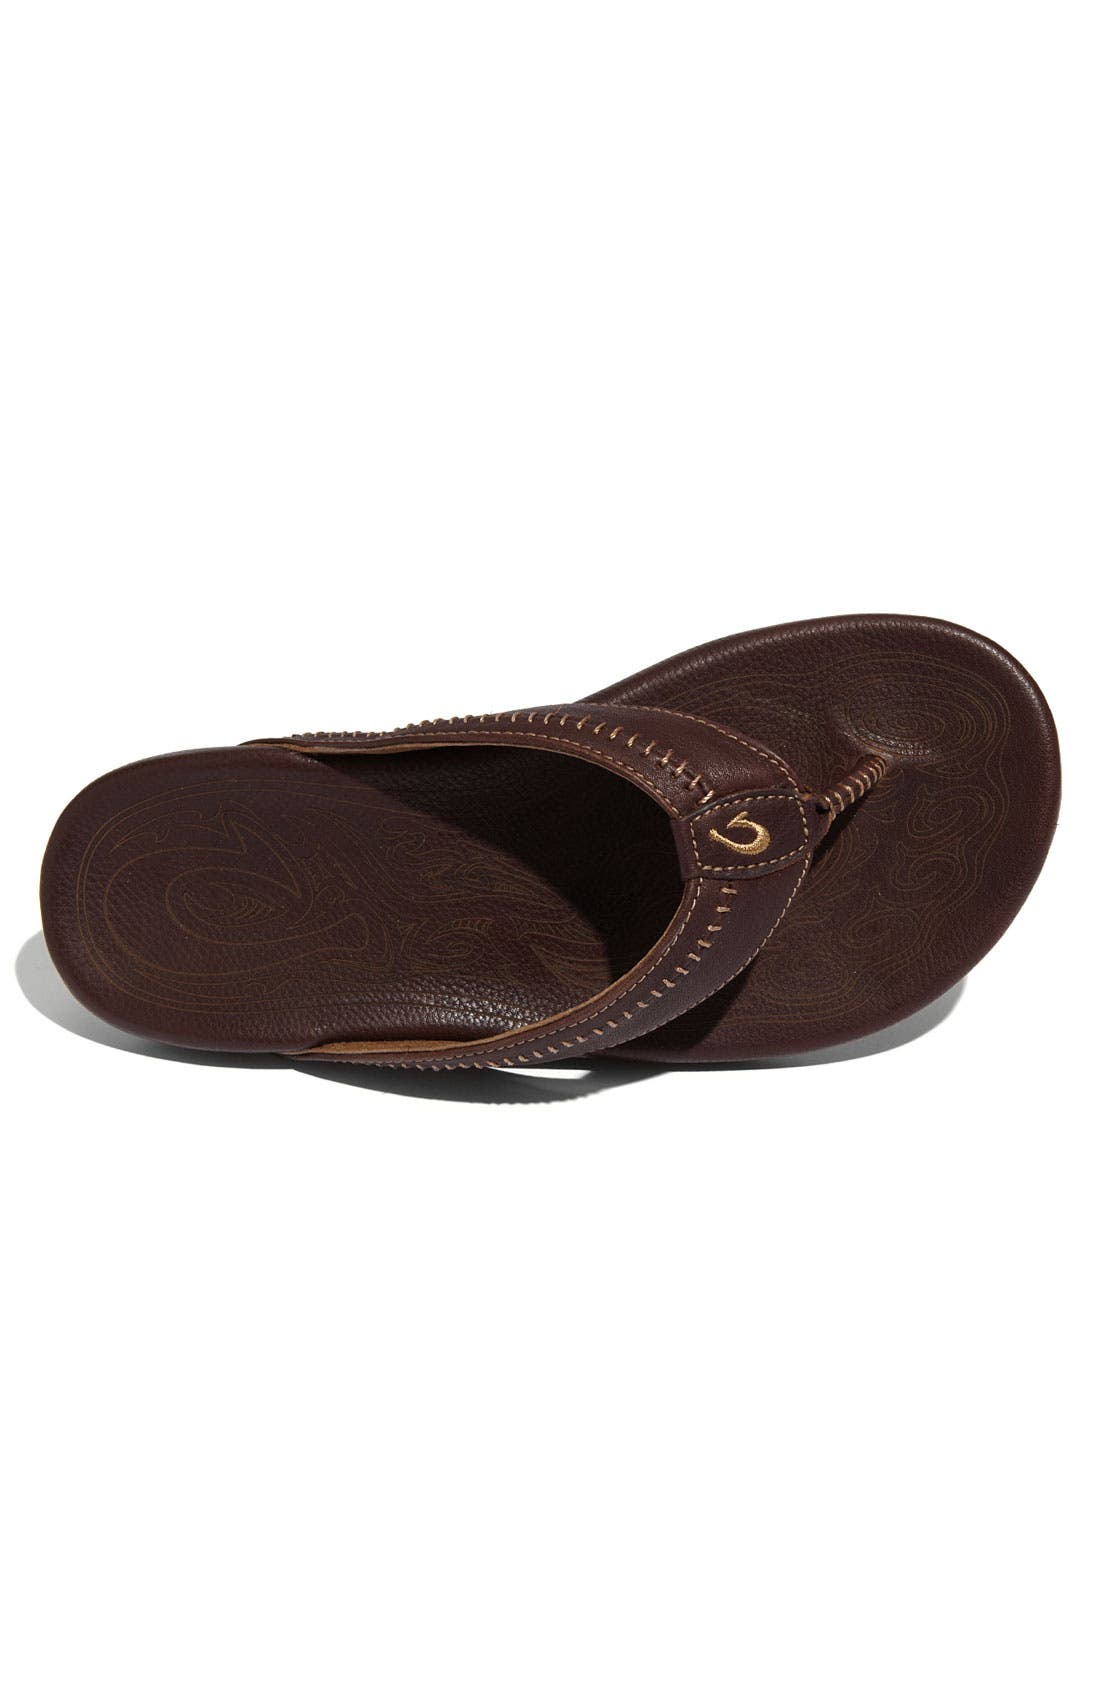 OLUKAI,                             'Hiapo' Flip Flop,                             Alternate thumbnail 4, color,                             TEAK/ TEAK